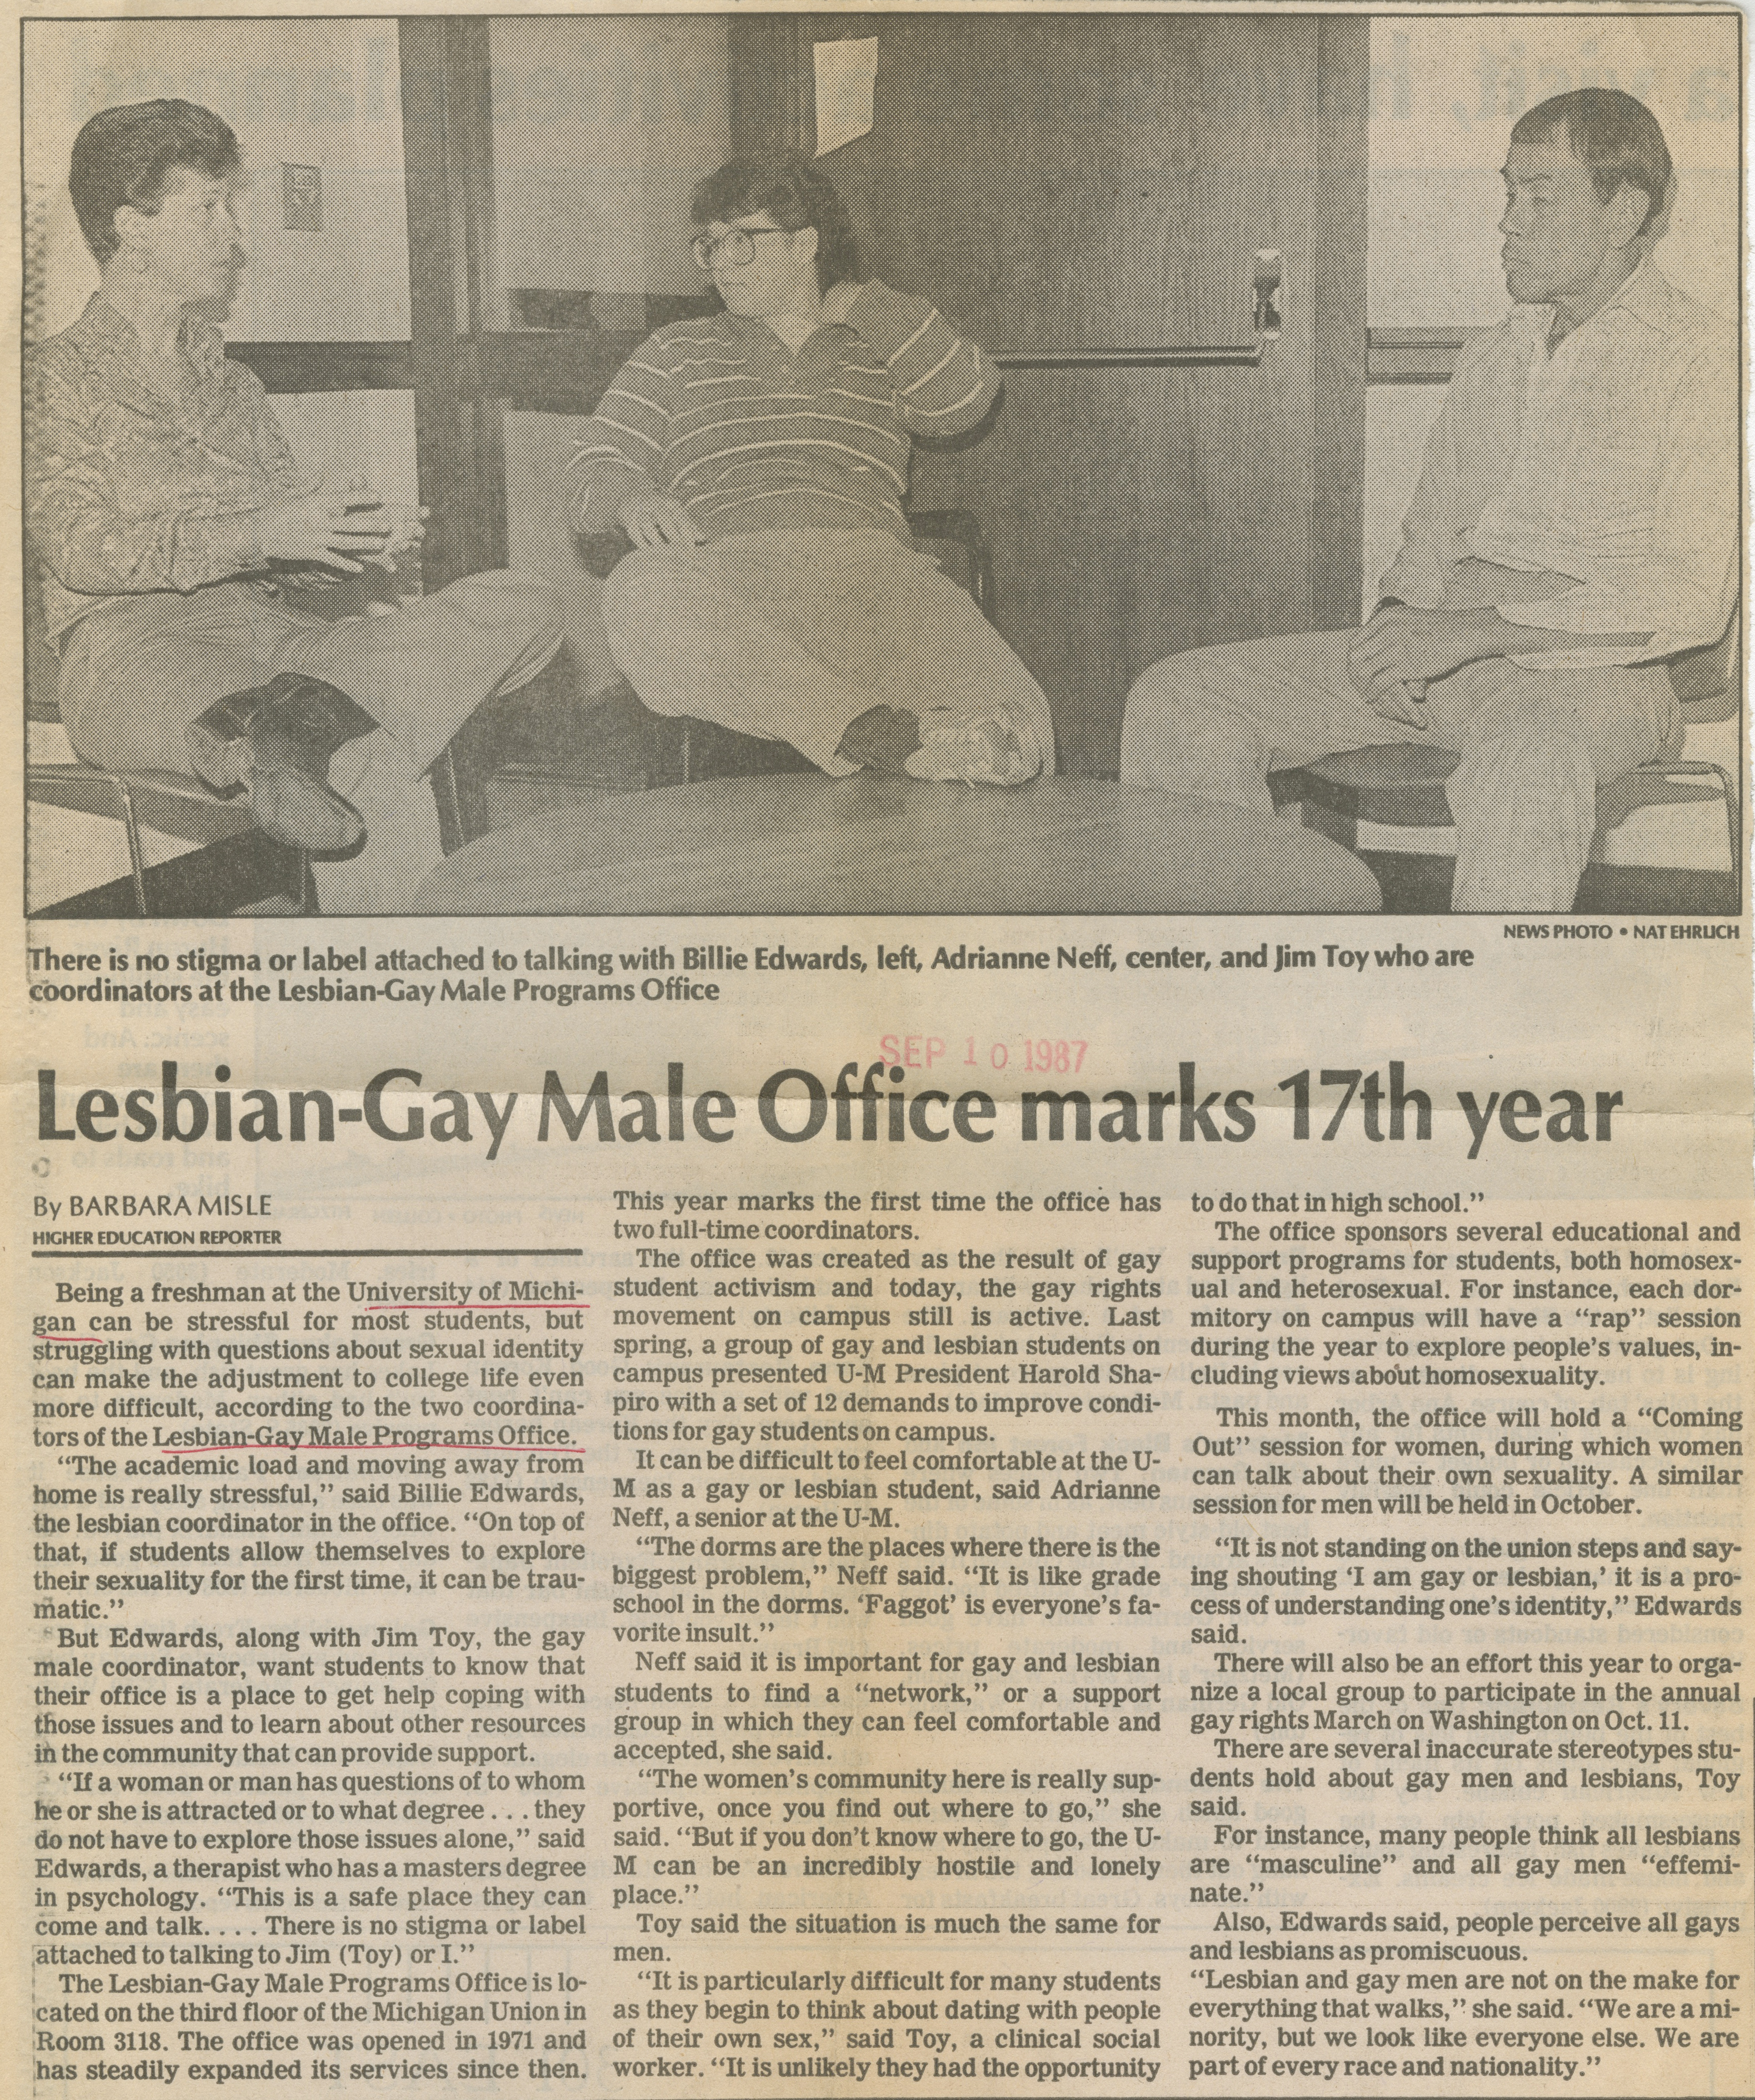 Lesbian-Gay Male Office Marks 17th Year image